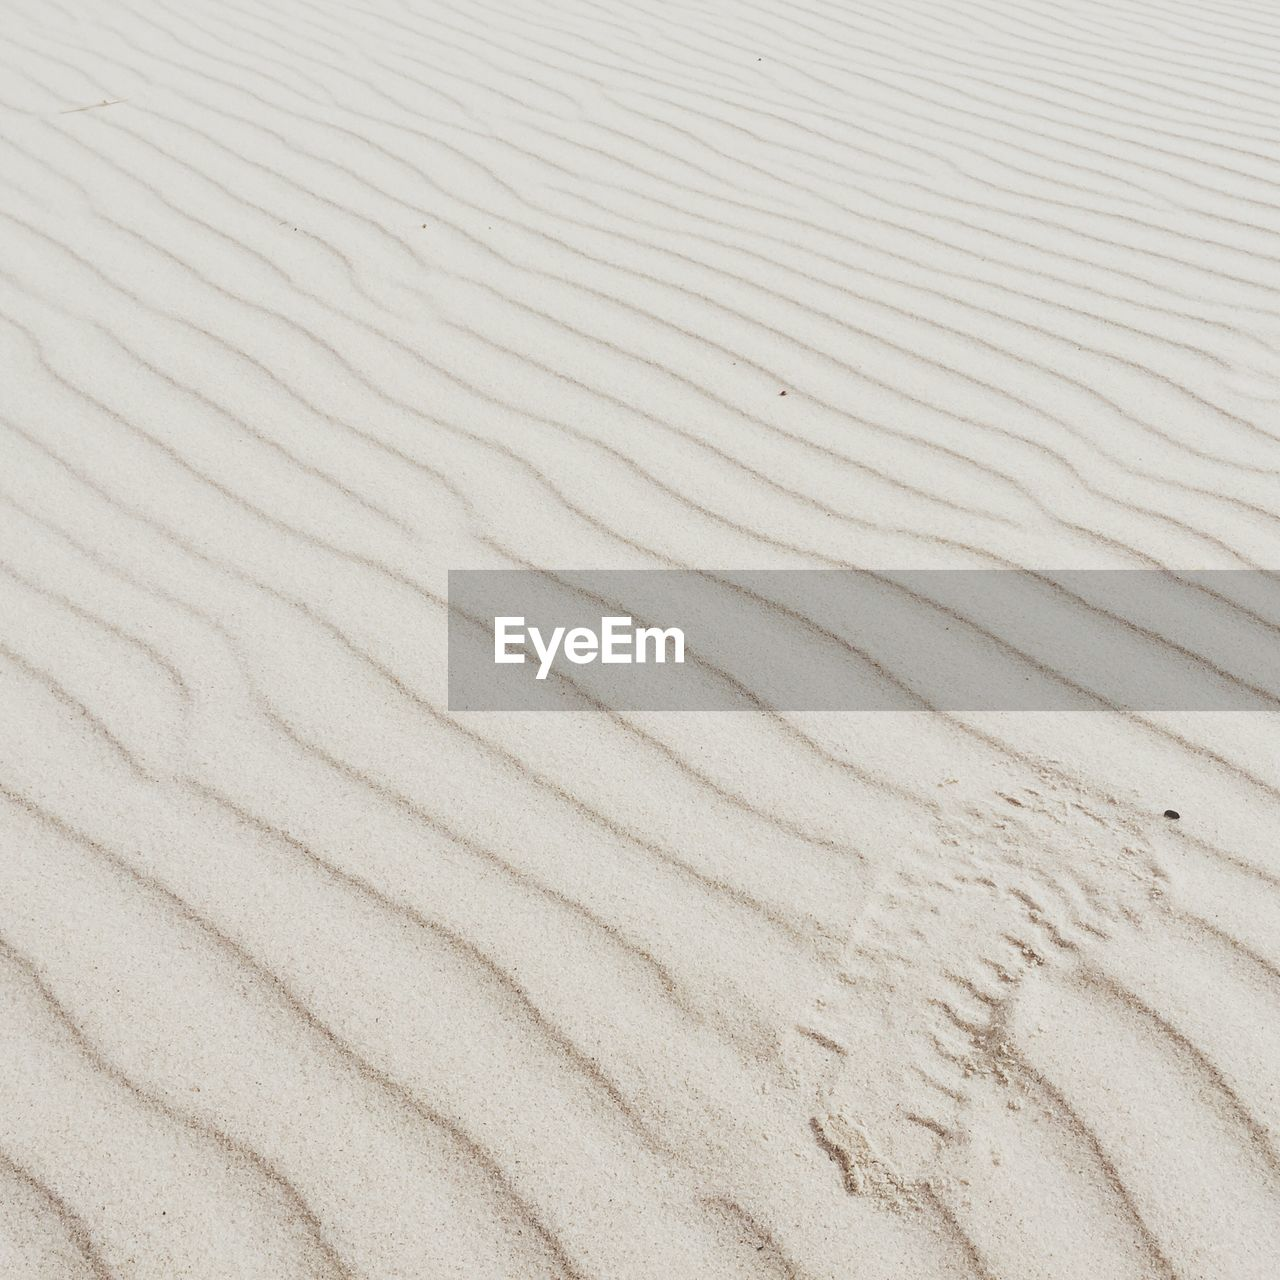 Full frame of natural pattern with footprint on beach sand